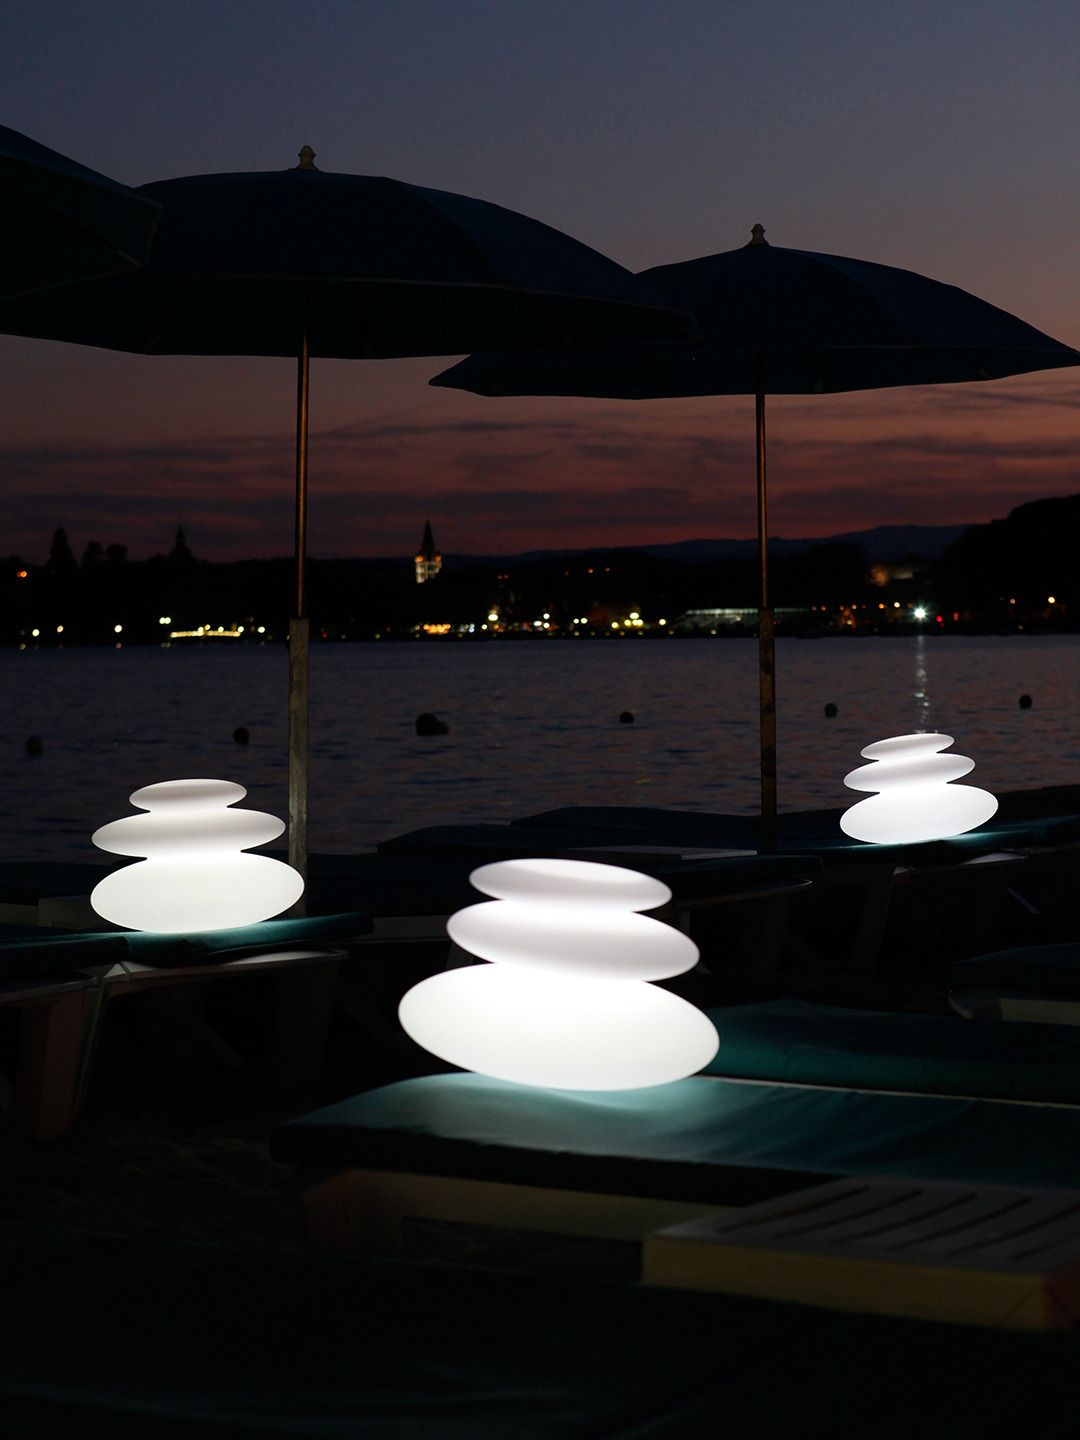 Zen:    Rechargeable LED indoor/outdoor lamp  Made from injection-molded high density polyethylene  Evoking three smooth pebbles laid on top of each other for a serene and calming display  Eco-friendly, waterproof, shockproof and cordless  Lights up with 160,000 colors variations